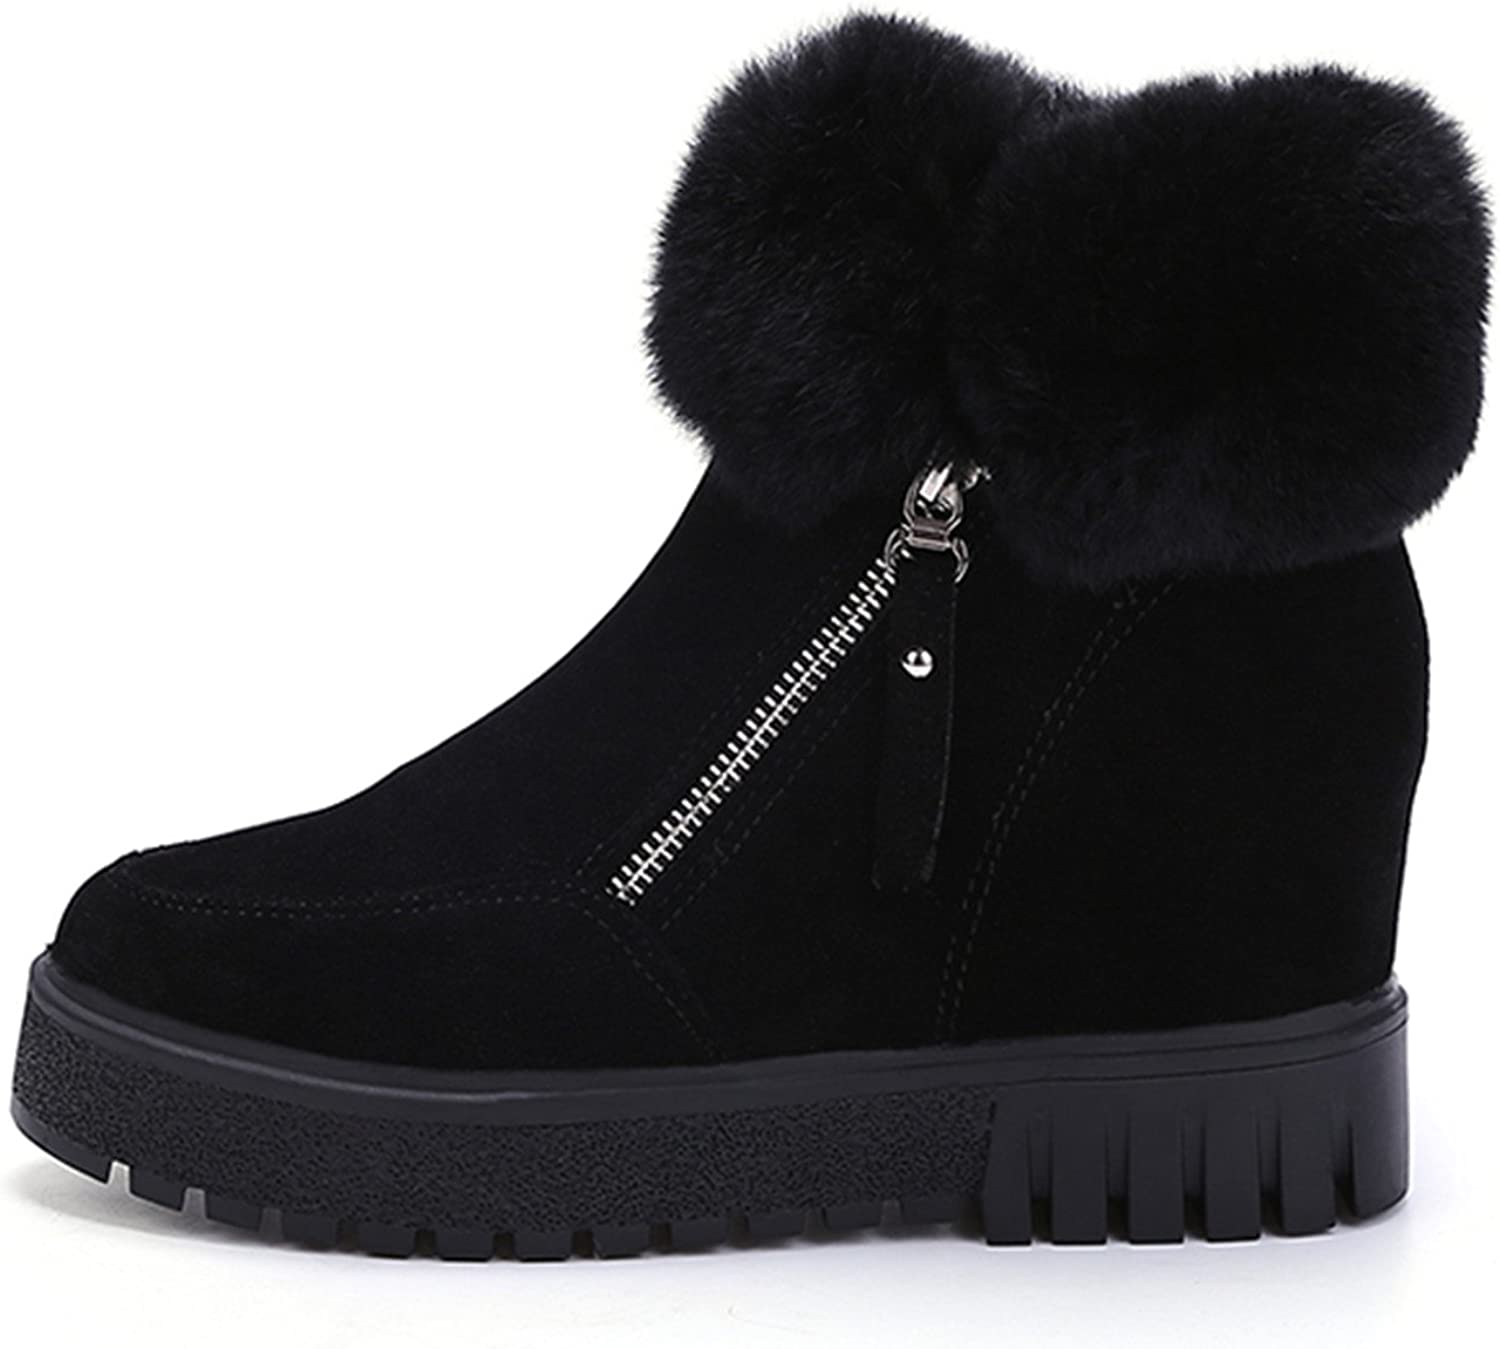 Dahanyi Stylish New Ankle Boots for Women Plush Warm Winter Boots Faux Fur Wedge Snow Boots Thick Platform shoes Woman Booties